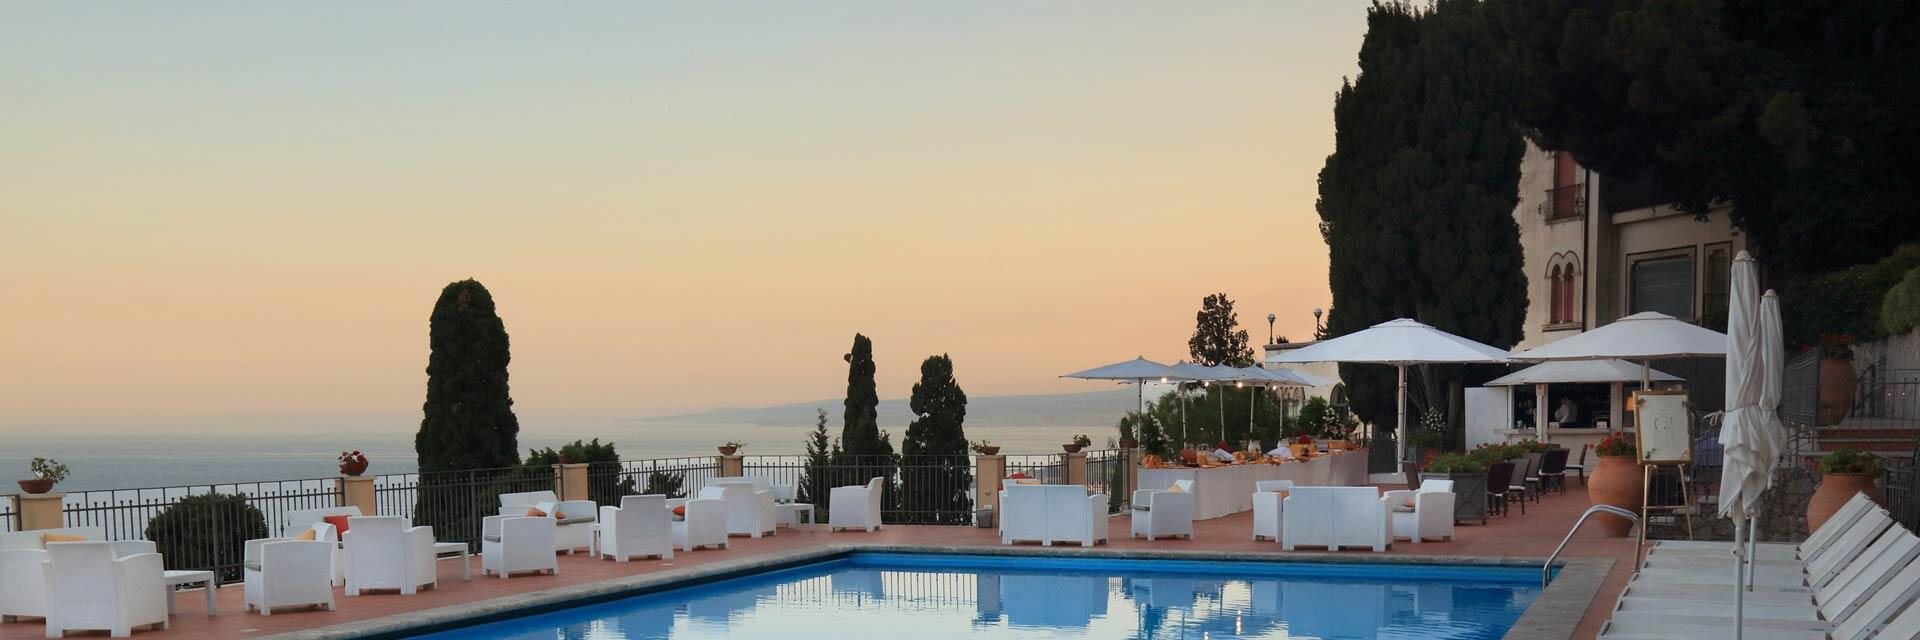 sanpietrotaormina it offerta-staycation-a-taormina-in-boutique-hotel-sul-mare 011